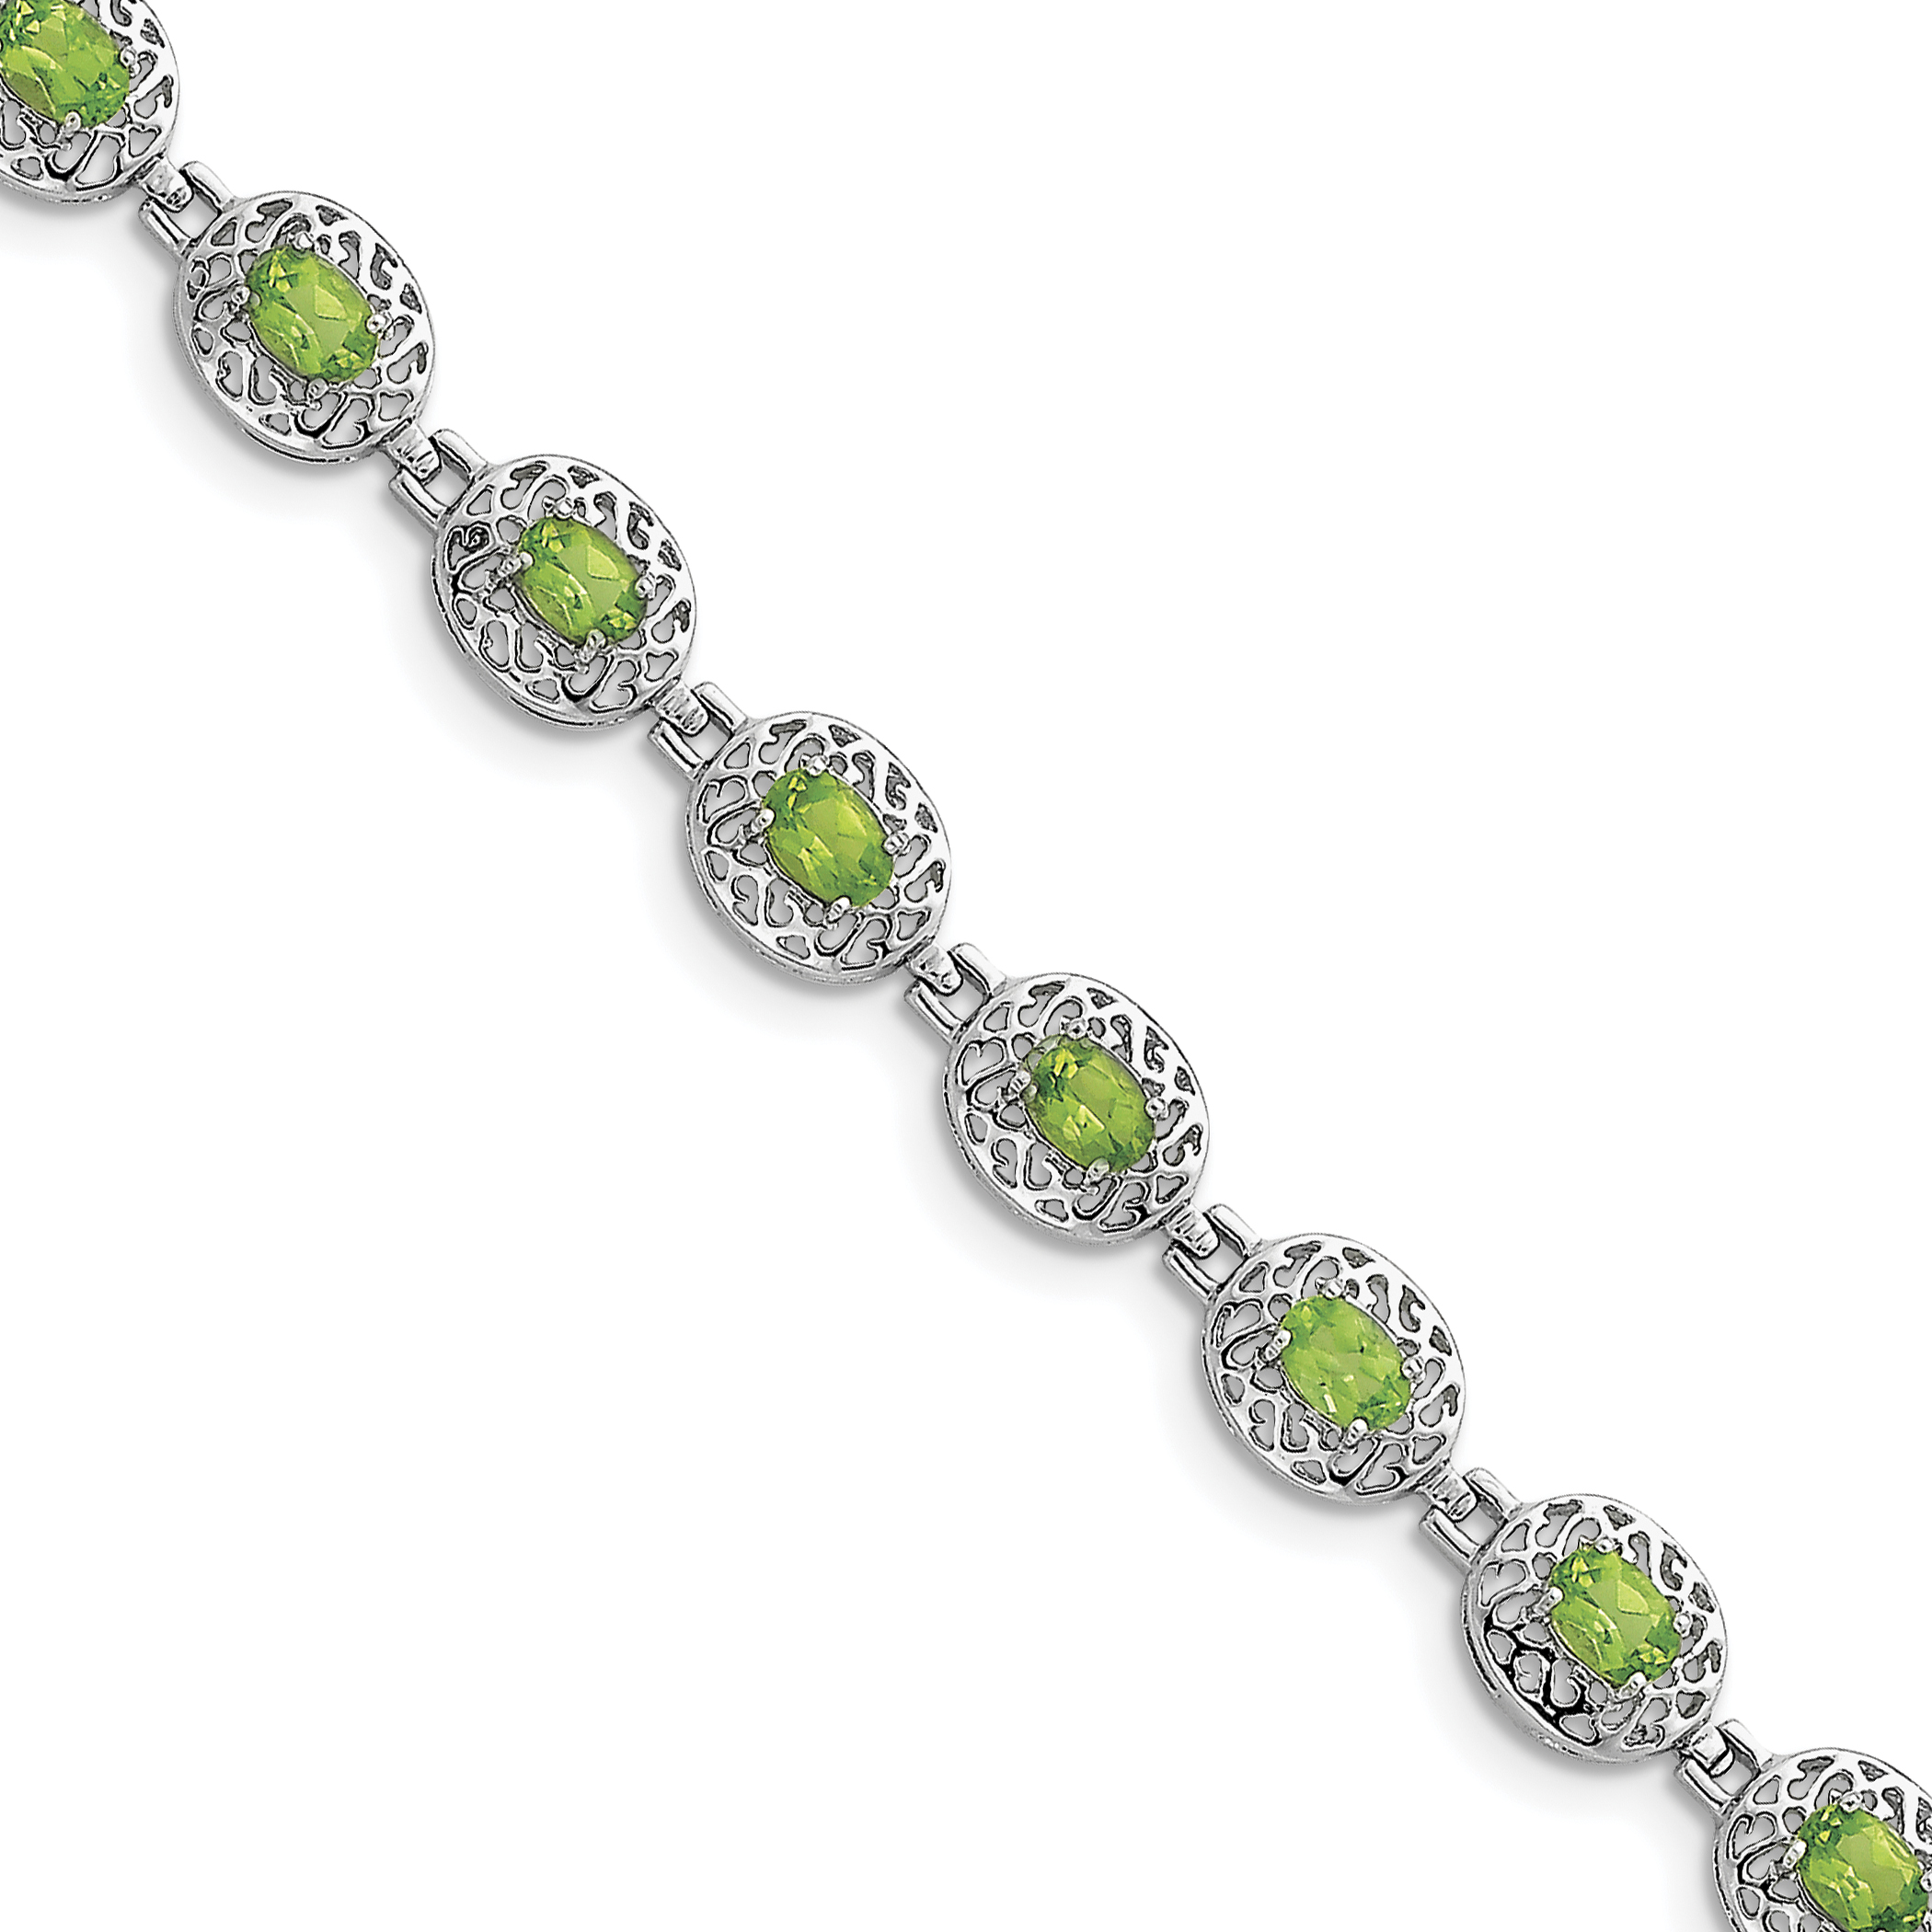 Roy Rose Jewelry Sterling Silver Peridot Filigree Bracelet ~ Length 7'' inches by